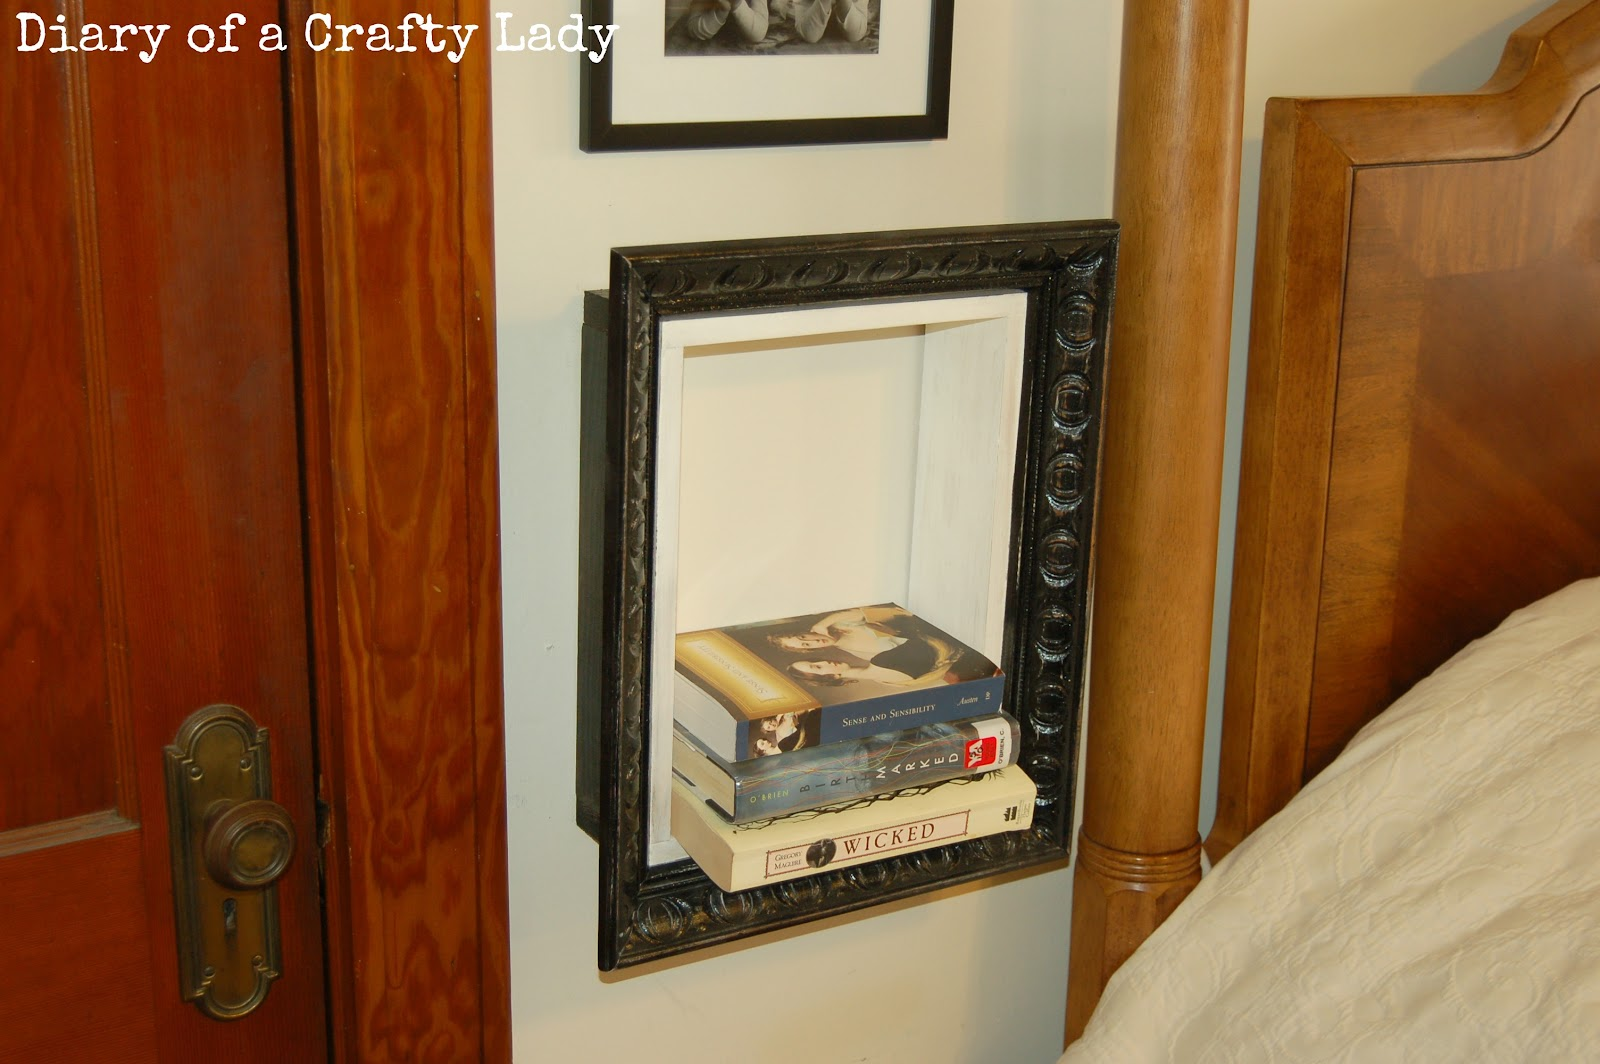 Diary of a Crafty Lady: Picture Frame Book Shelf